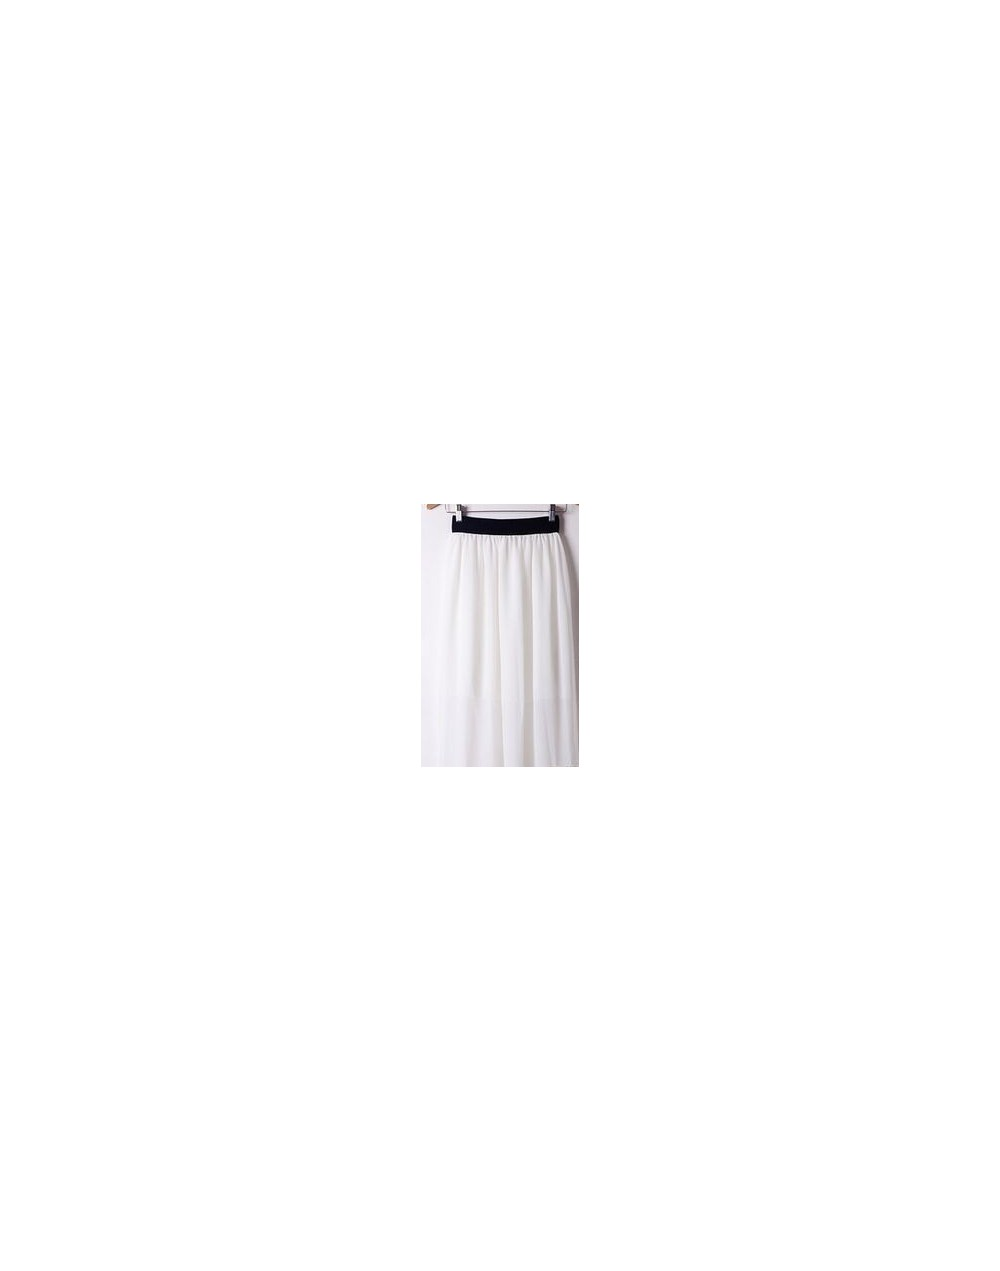 New Brand Designer Hot Sale Candy Colors High Quality Sexy Long Chiffon Skirt Pink Blue Black Red White Green C003 - white -...